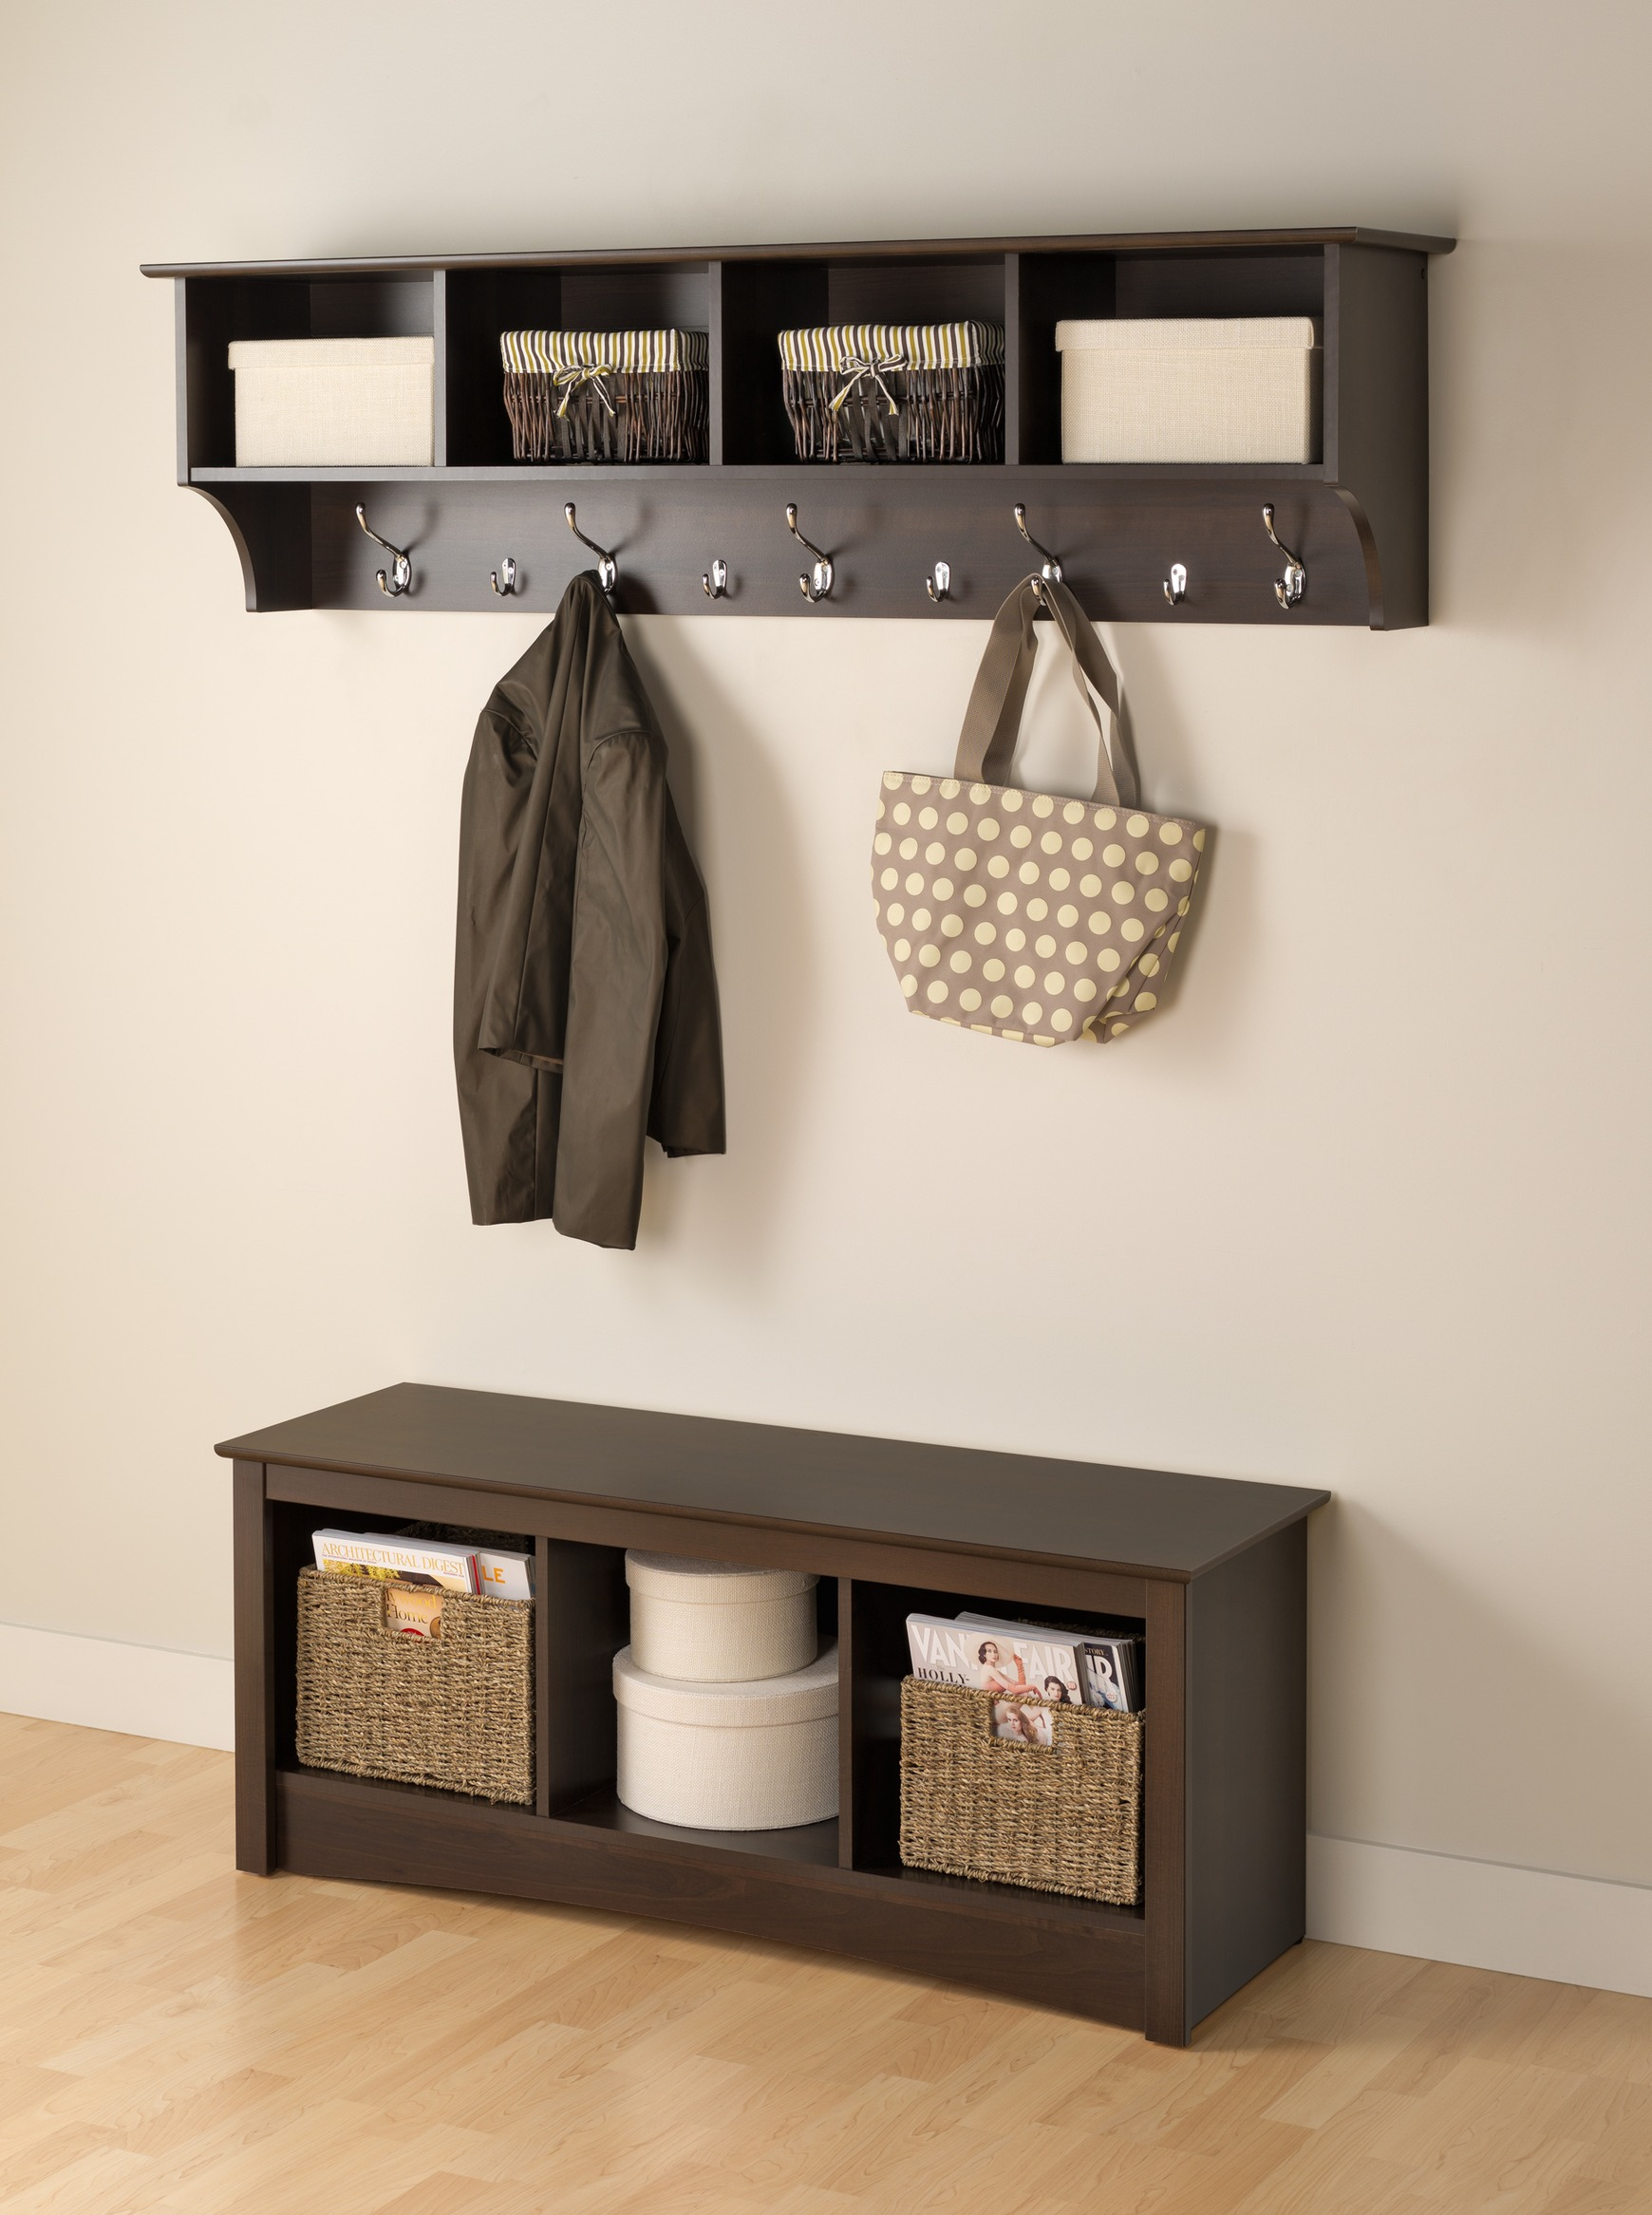 Prepac Hanging Entryway Shelf By Oj Commerce 82 07 109 74